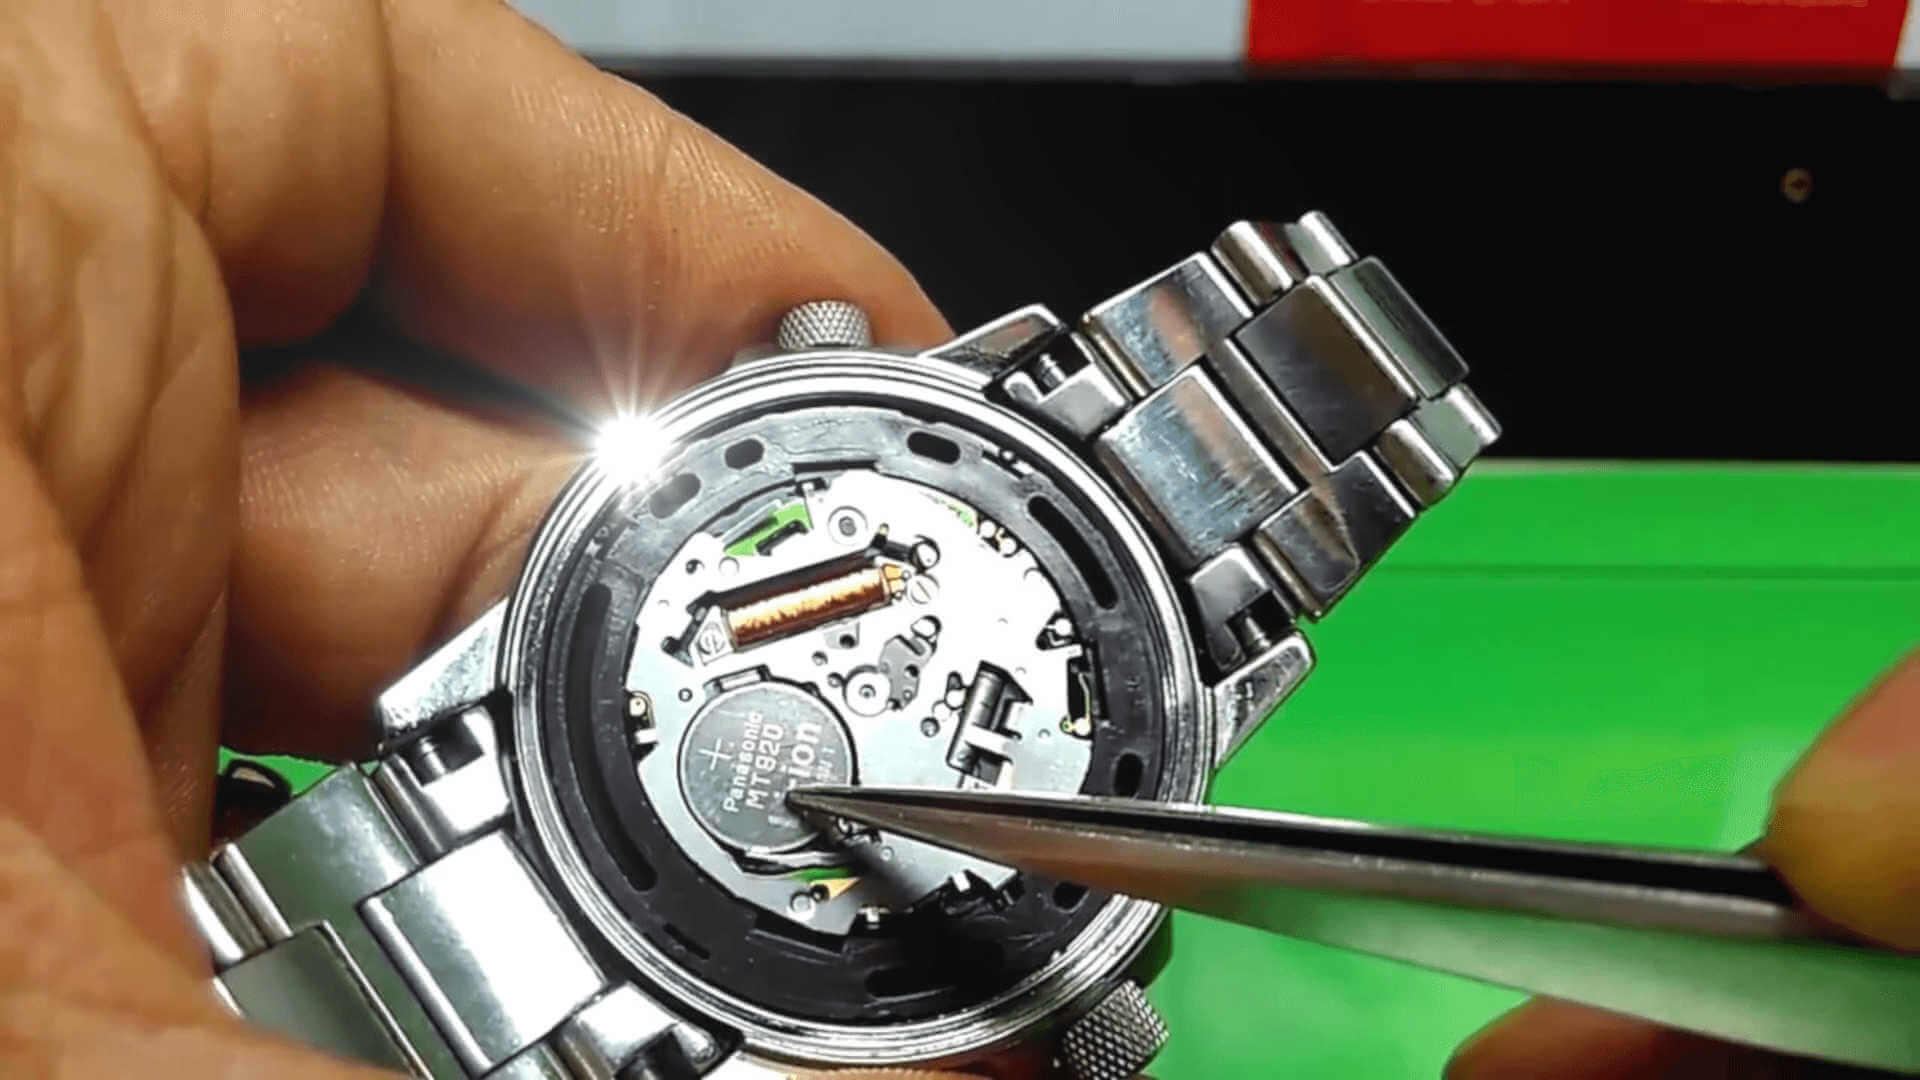 CITIZEN WATCH BEING REPAIRED